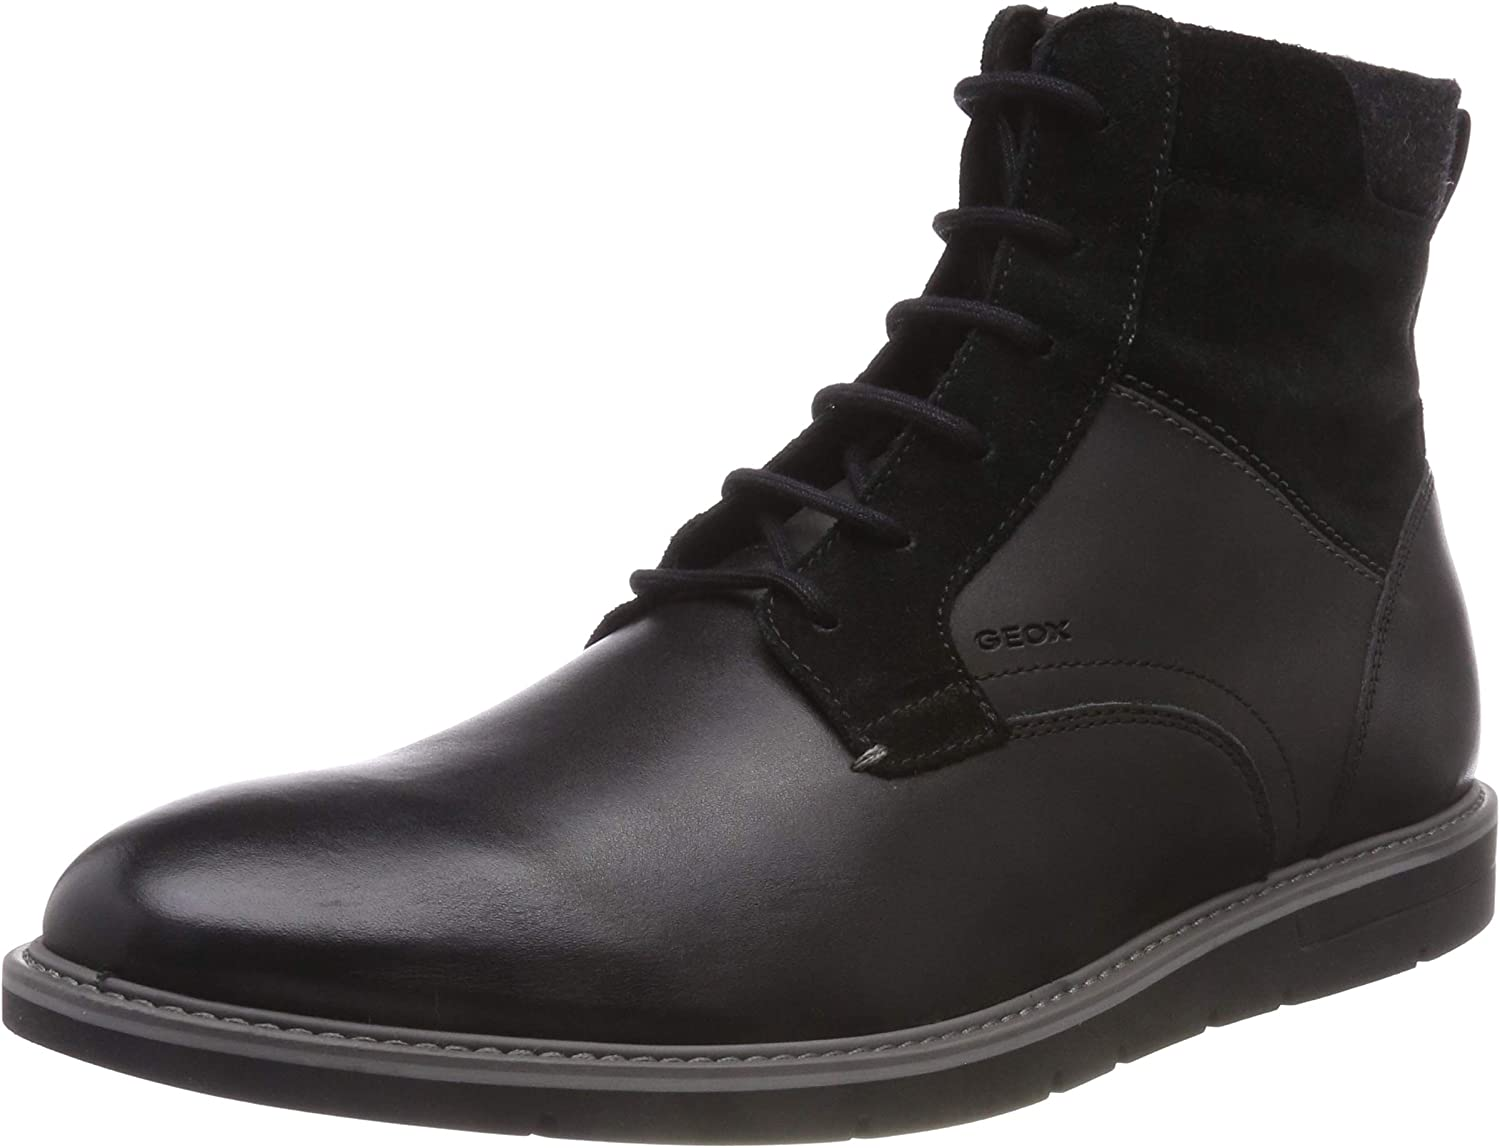 Geox Very popular Men's Portland Mall Ankle Classic Boots